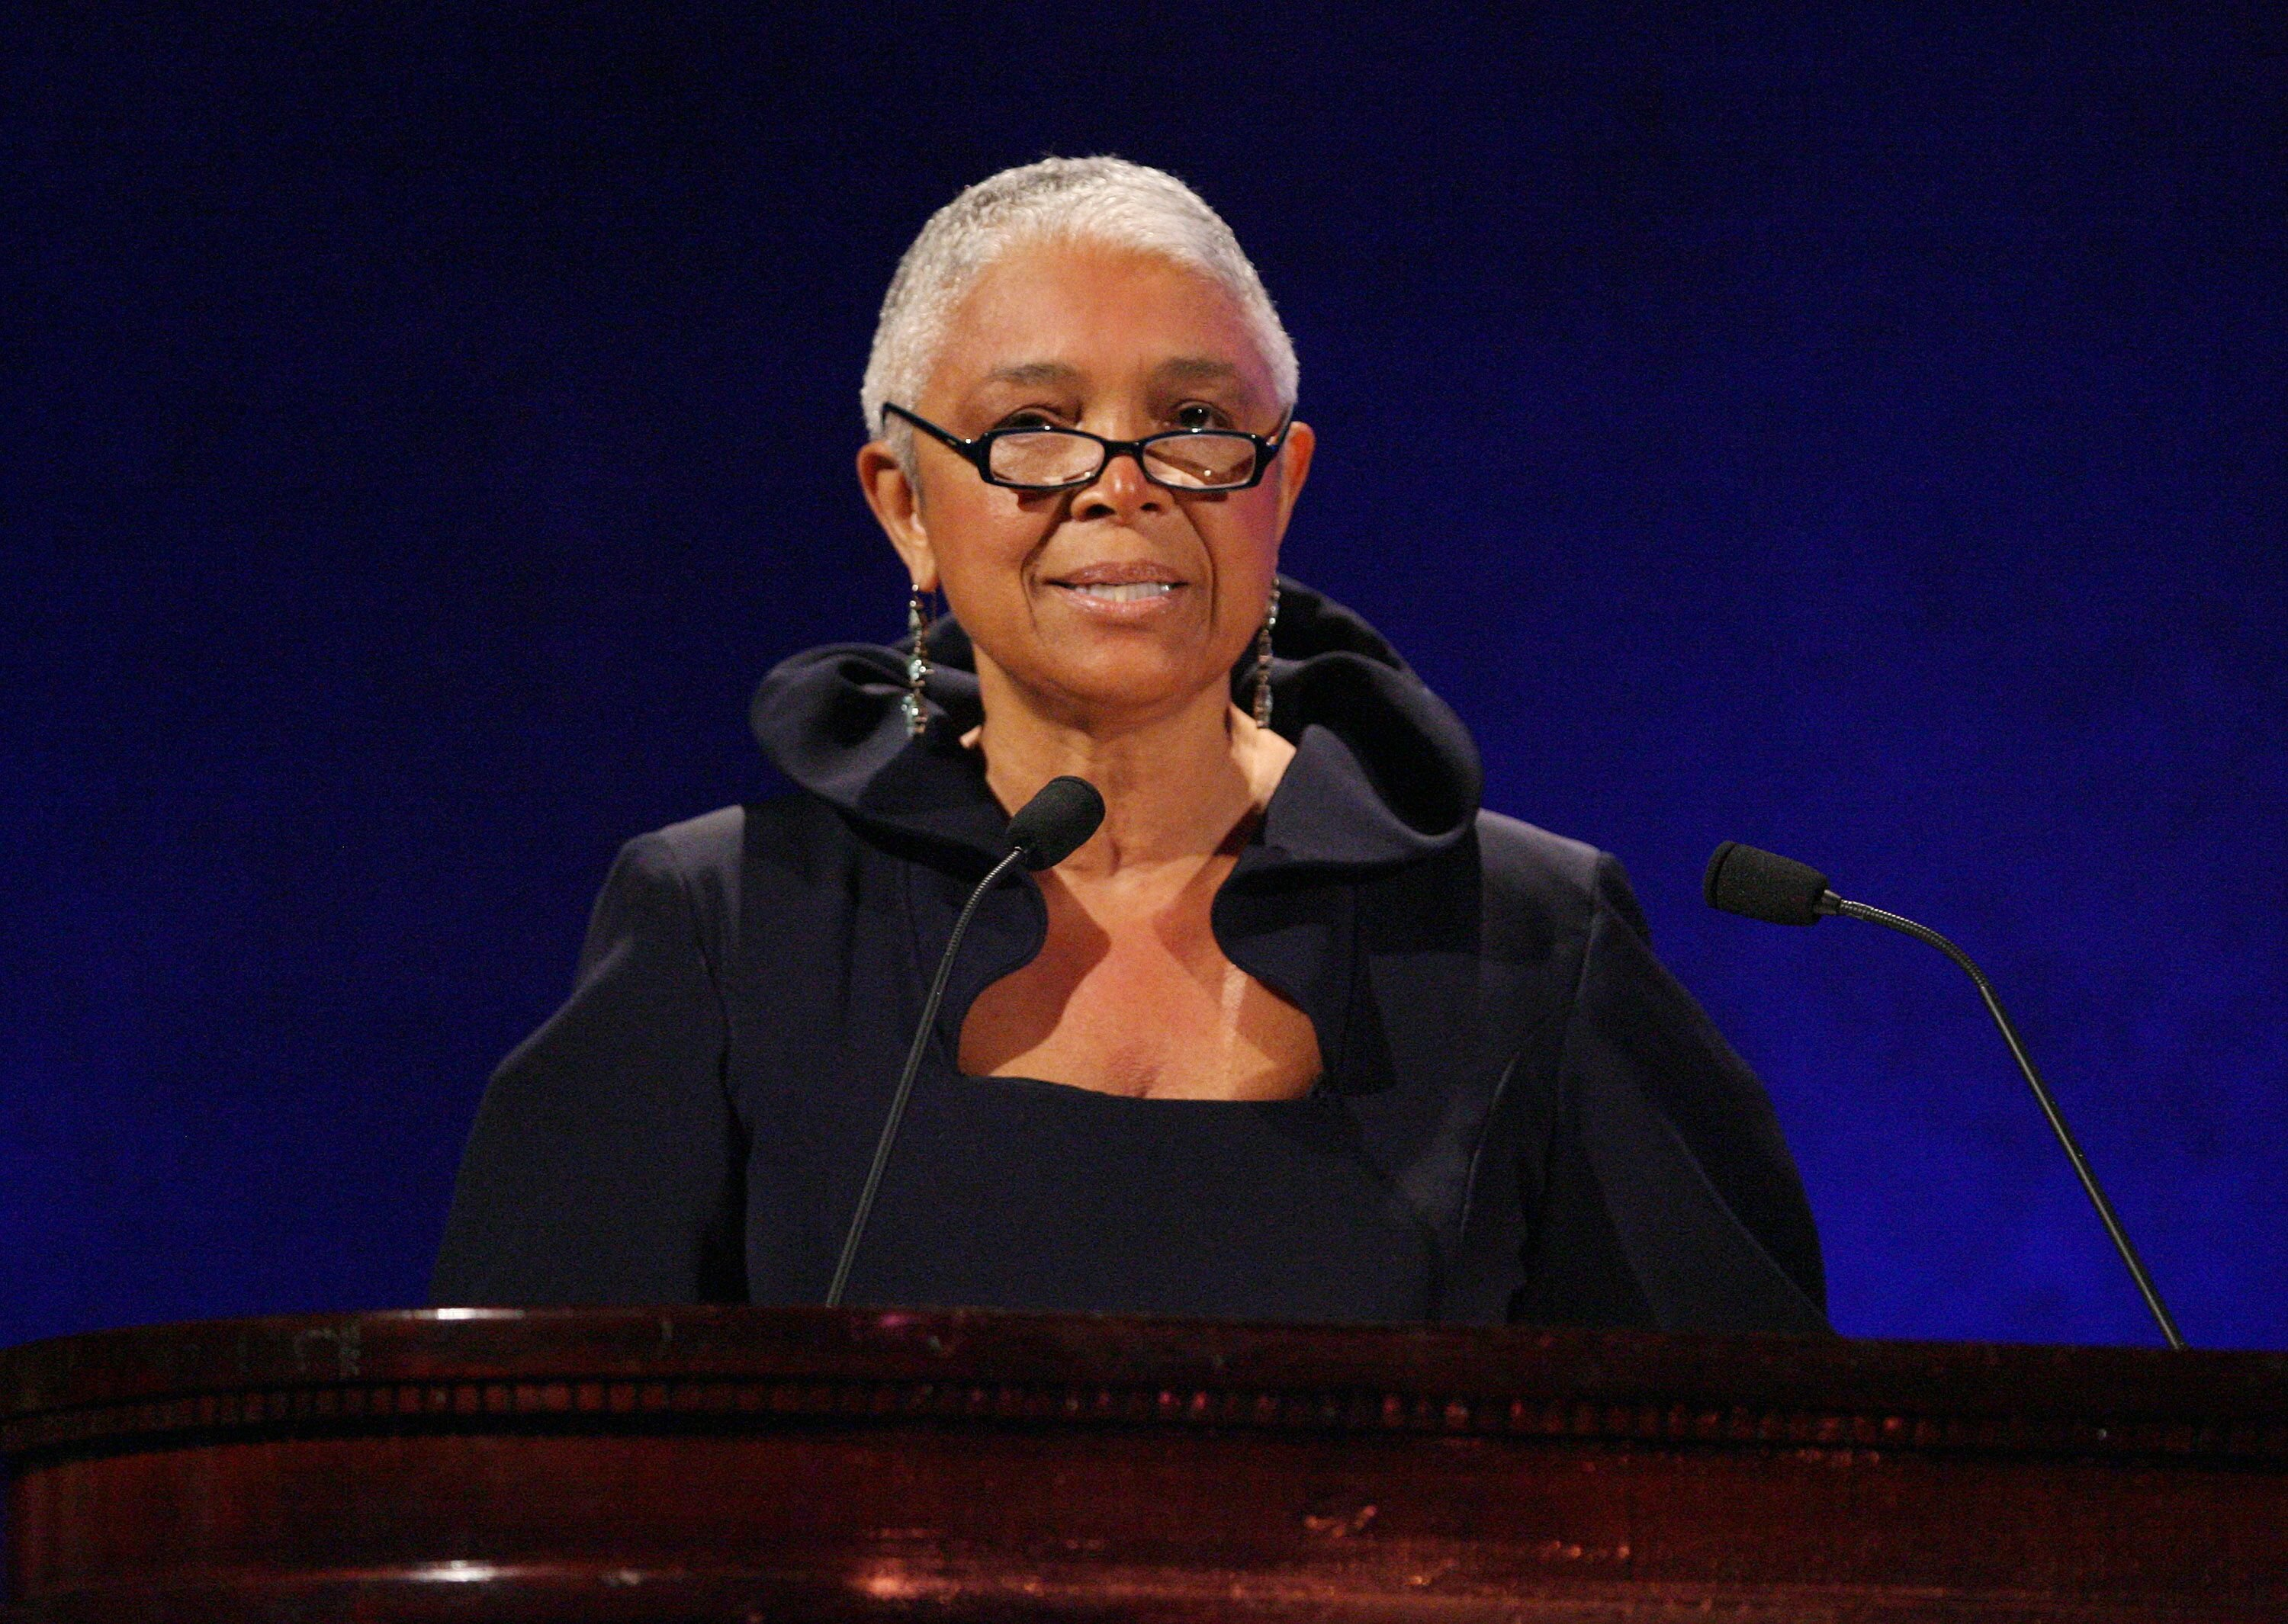 Dr. Camille Cosby speaks on stage at the 35th Anniversary of the Jackie Robinson Foundation hosted by Bill Cosby at the Waldorf Astoria hotel on March 3, 2008 in New York  | Source: Getty Images